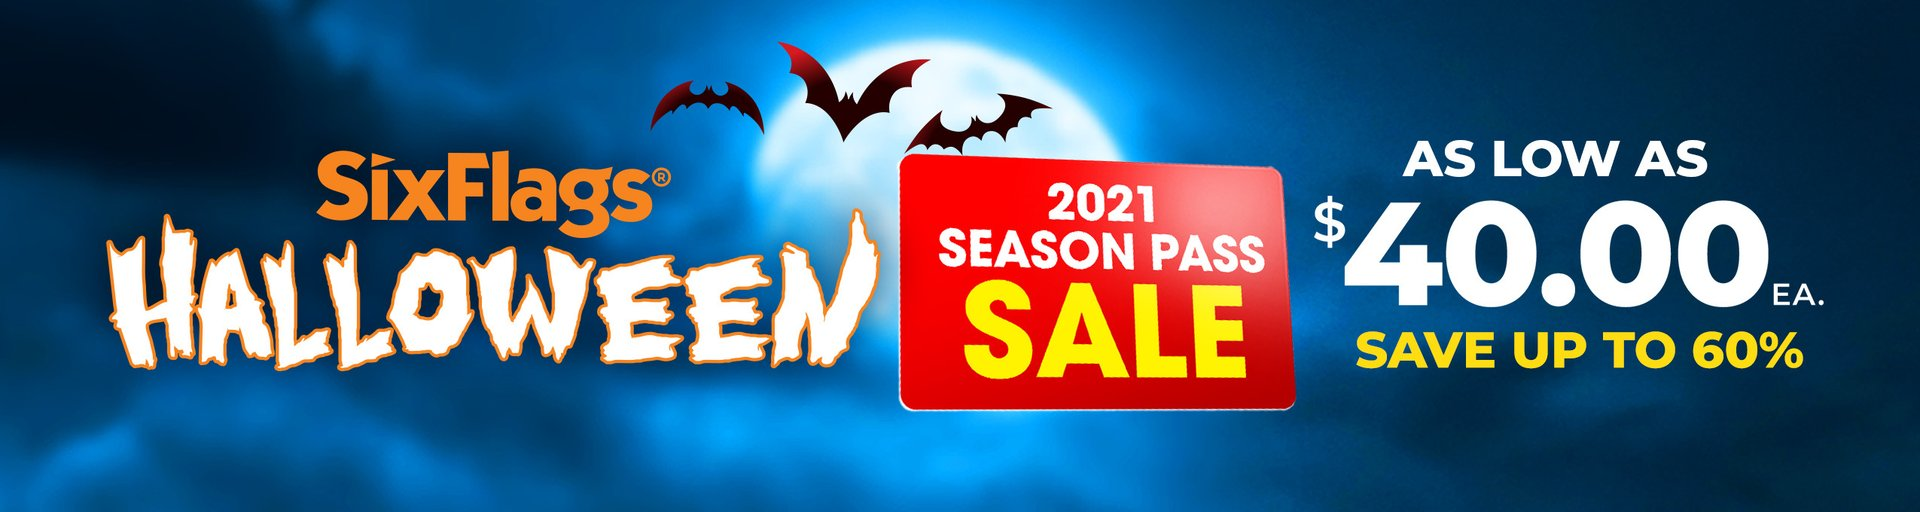 2021 Season Pass As Low As $40/ea